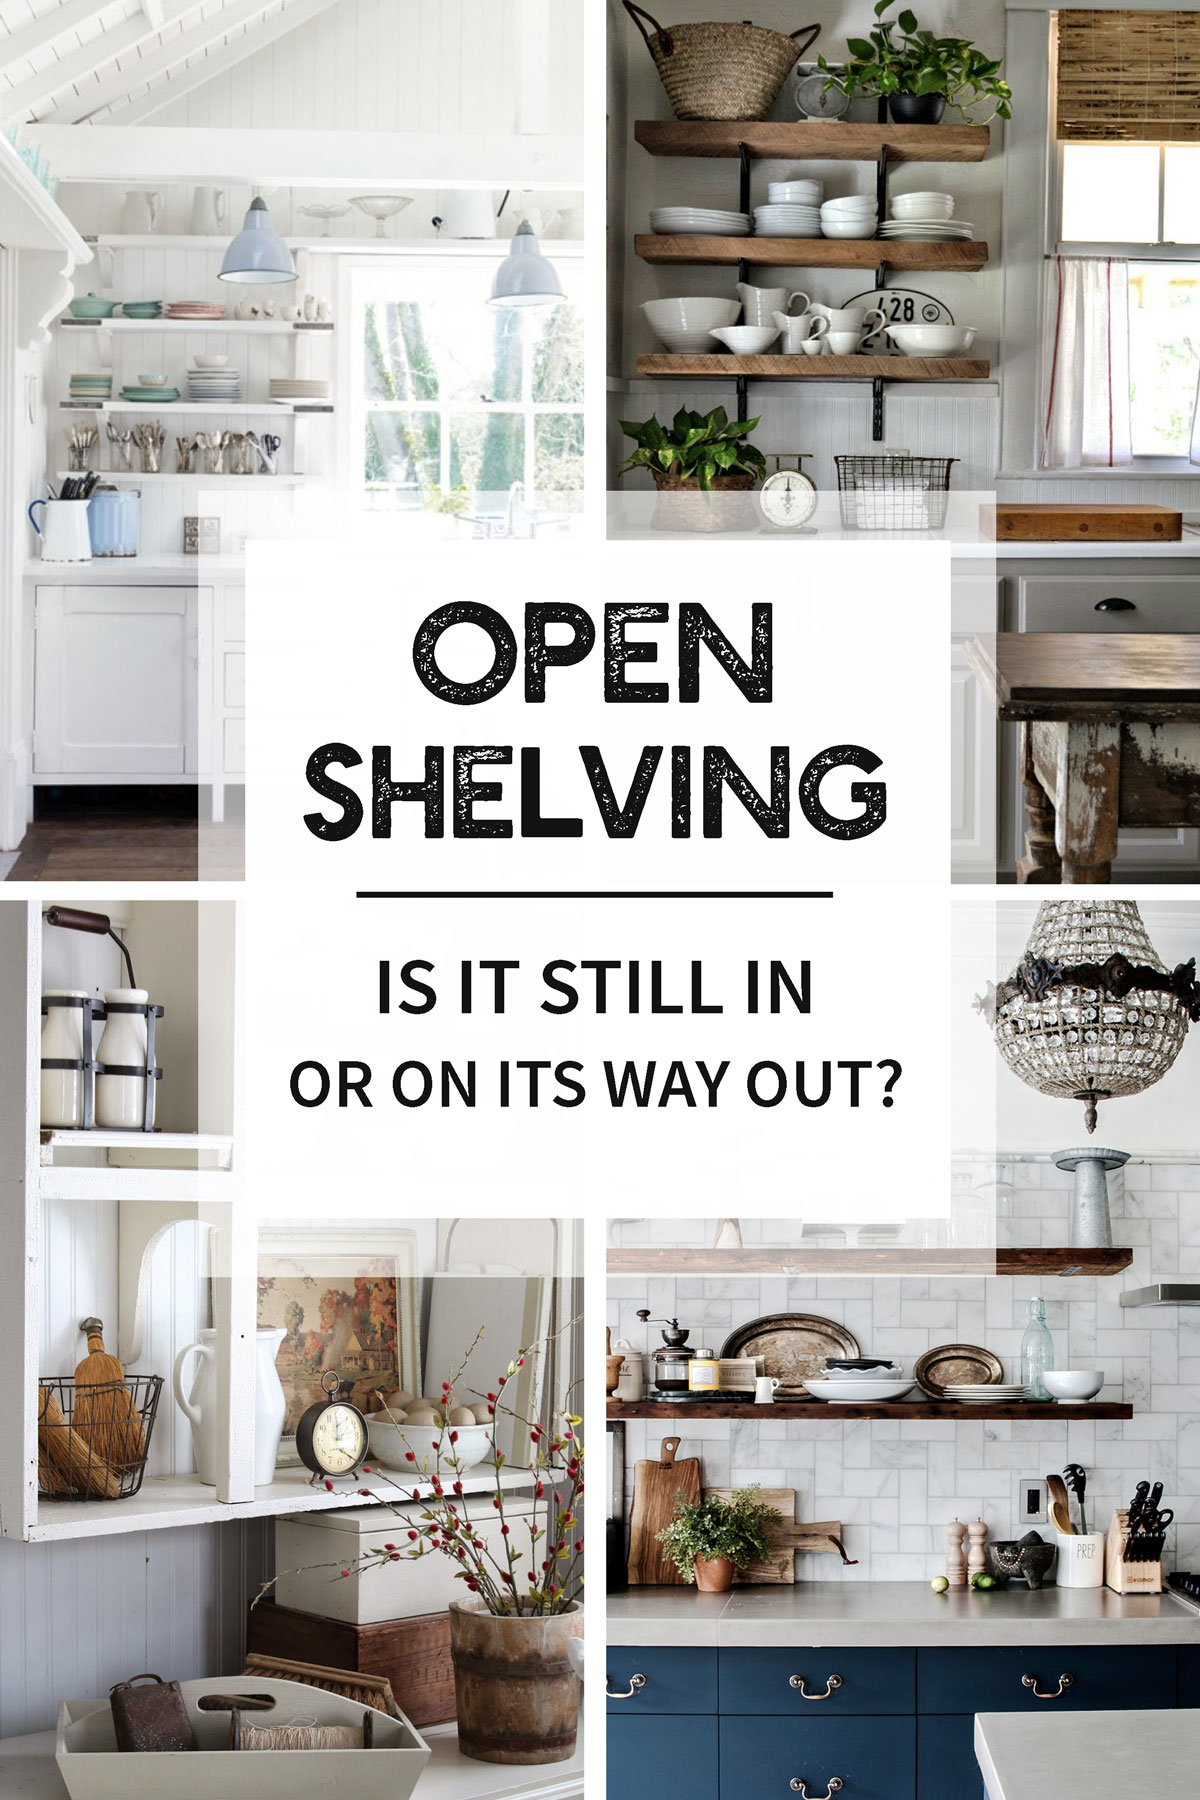 open shelving still its way out tidbits floating shelves above kitchen sink compelling opinions bathroom shower ideas pottery barn kids bridge shelf front door shoe storage ikea